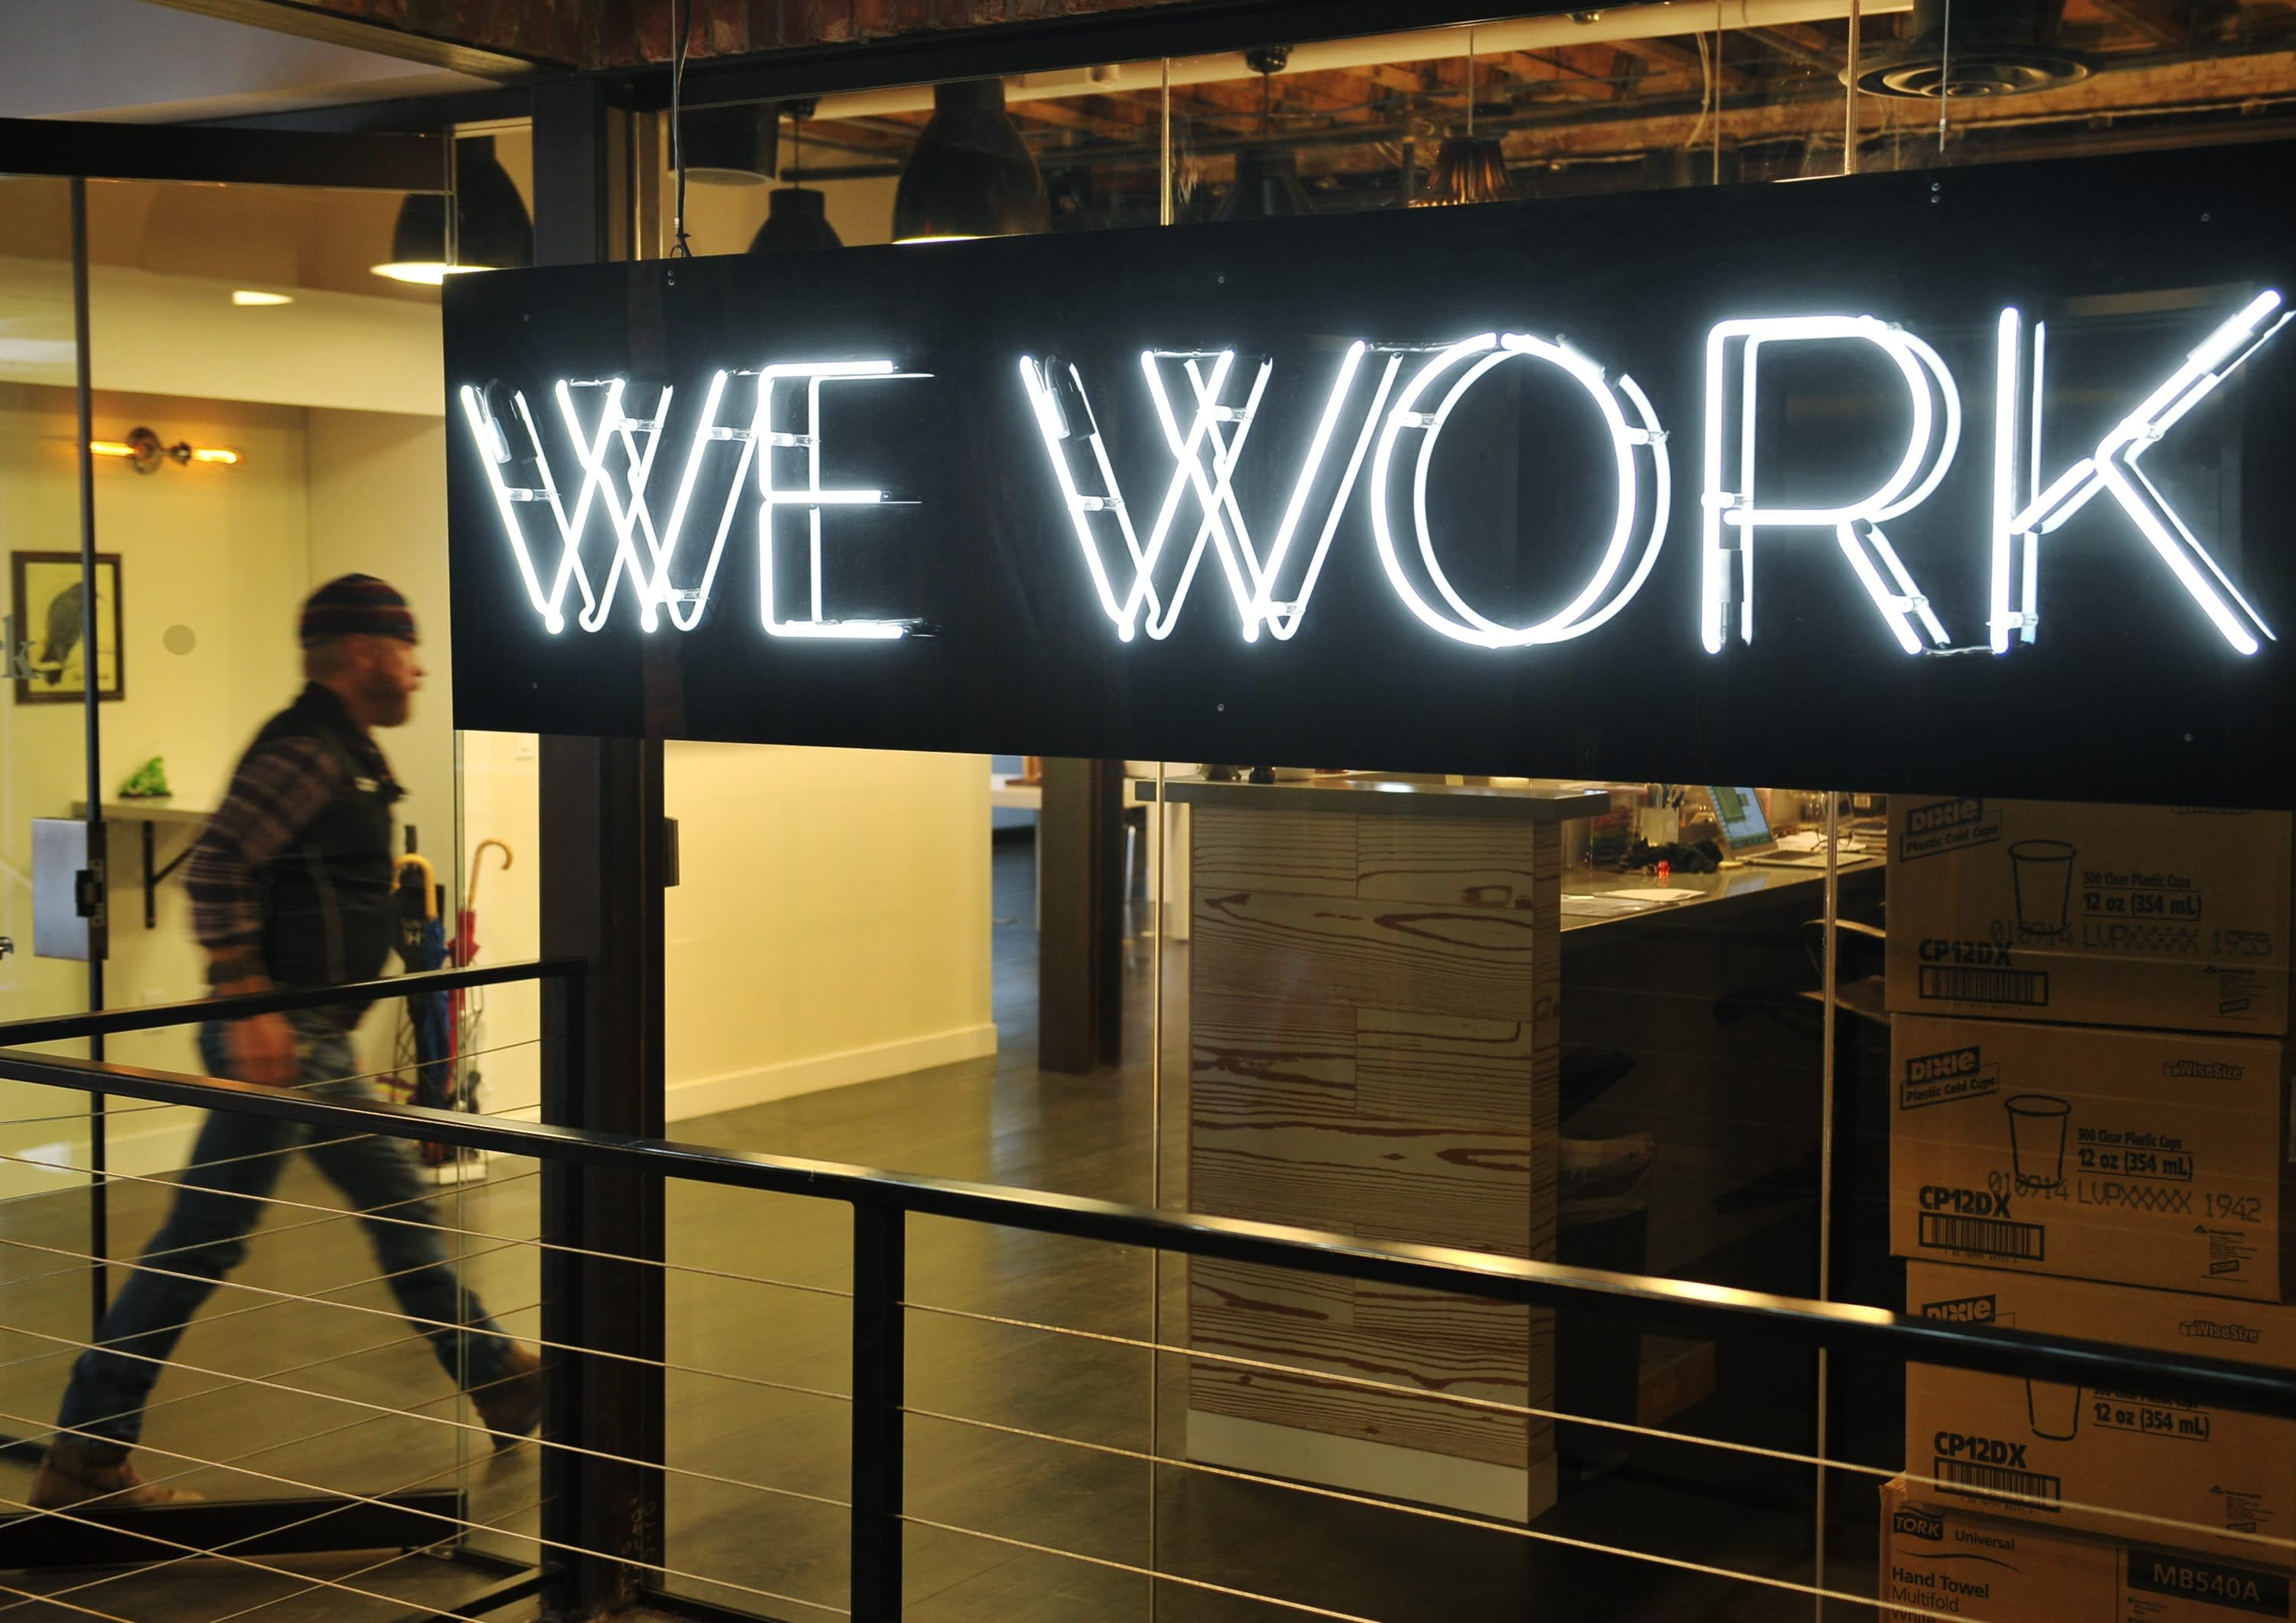 WeWork is exploring how to get out of about 100 leases as it looks to stem losses